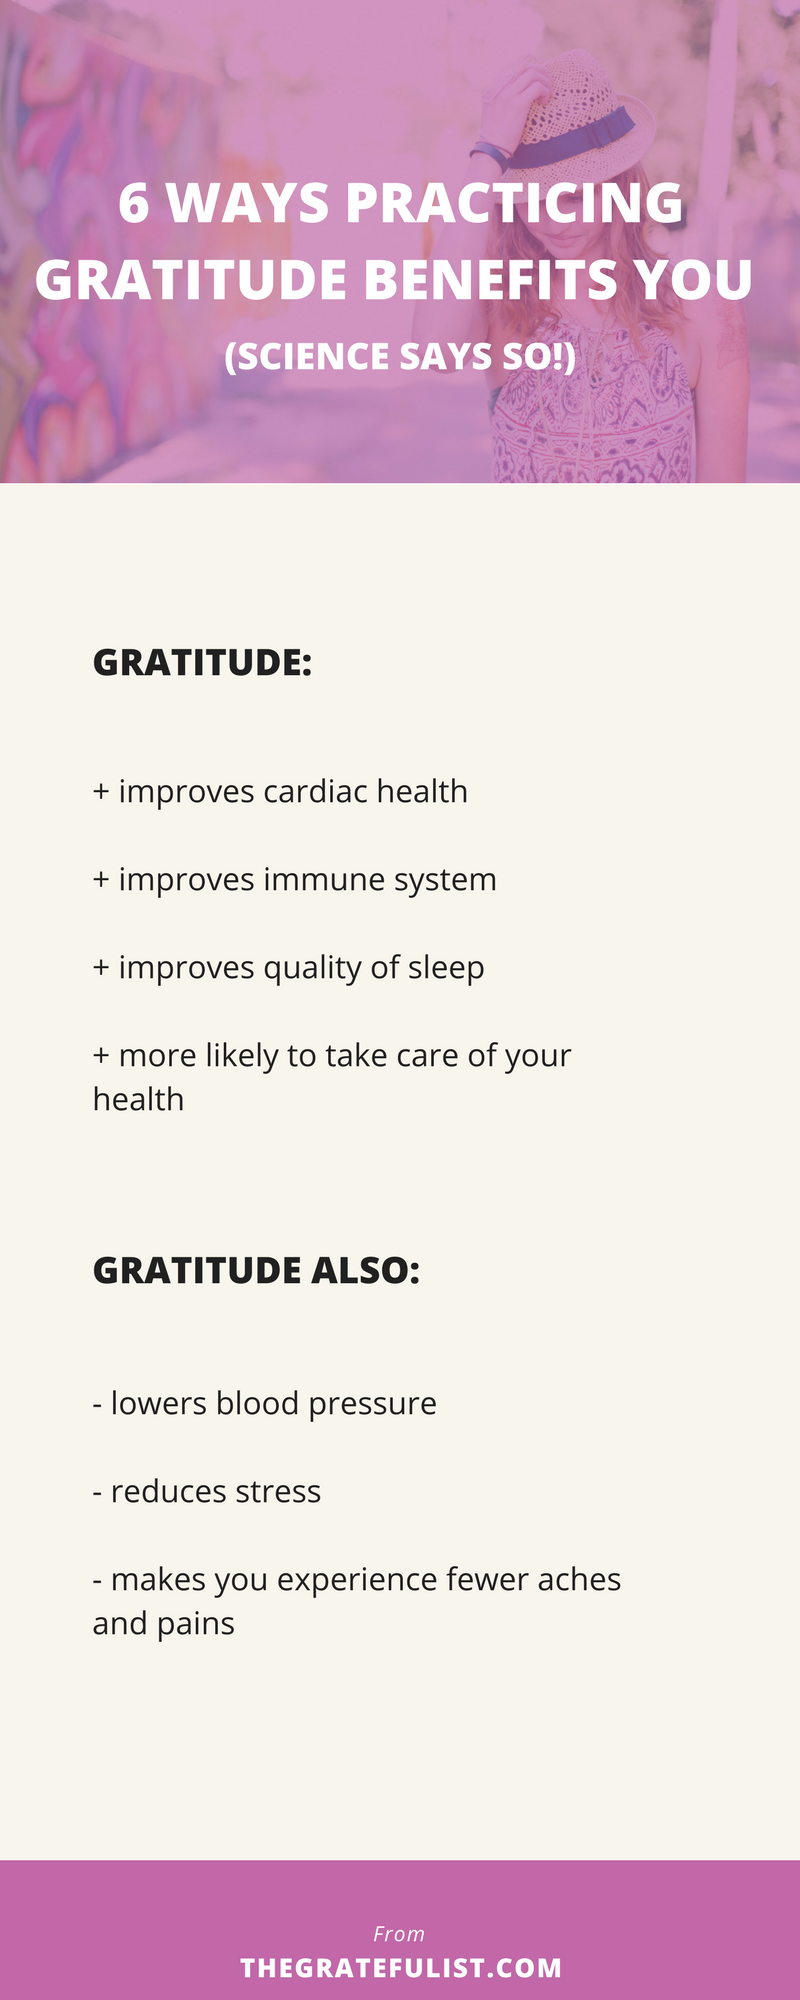 6 Ways Practicing Gratitude Benefits You (Science Says So!) - Did you know that gratitude increases happiness and well-being and reduces depression? That's what all of us soul-connected yet stressed-out creatives could use a little more of, right?!   Click through to check out all the ways practicing gratitude WILL benefit you (and get access to The Gratitude Toolbox while your at it).